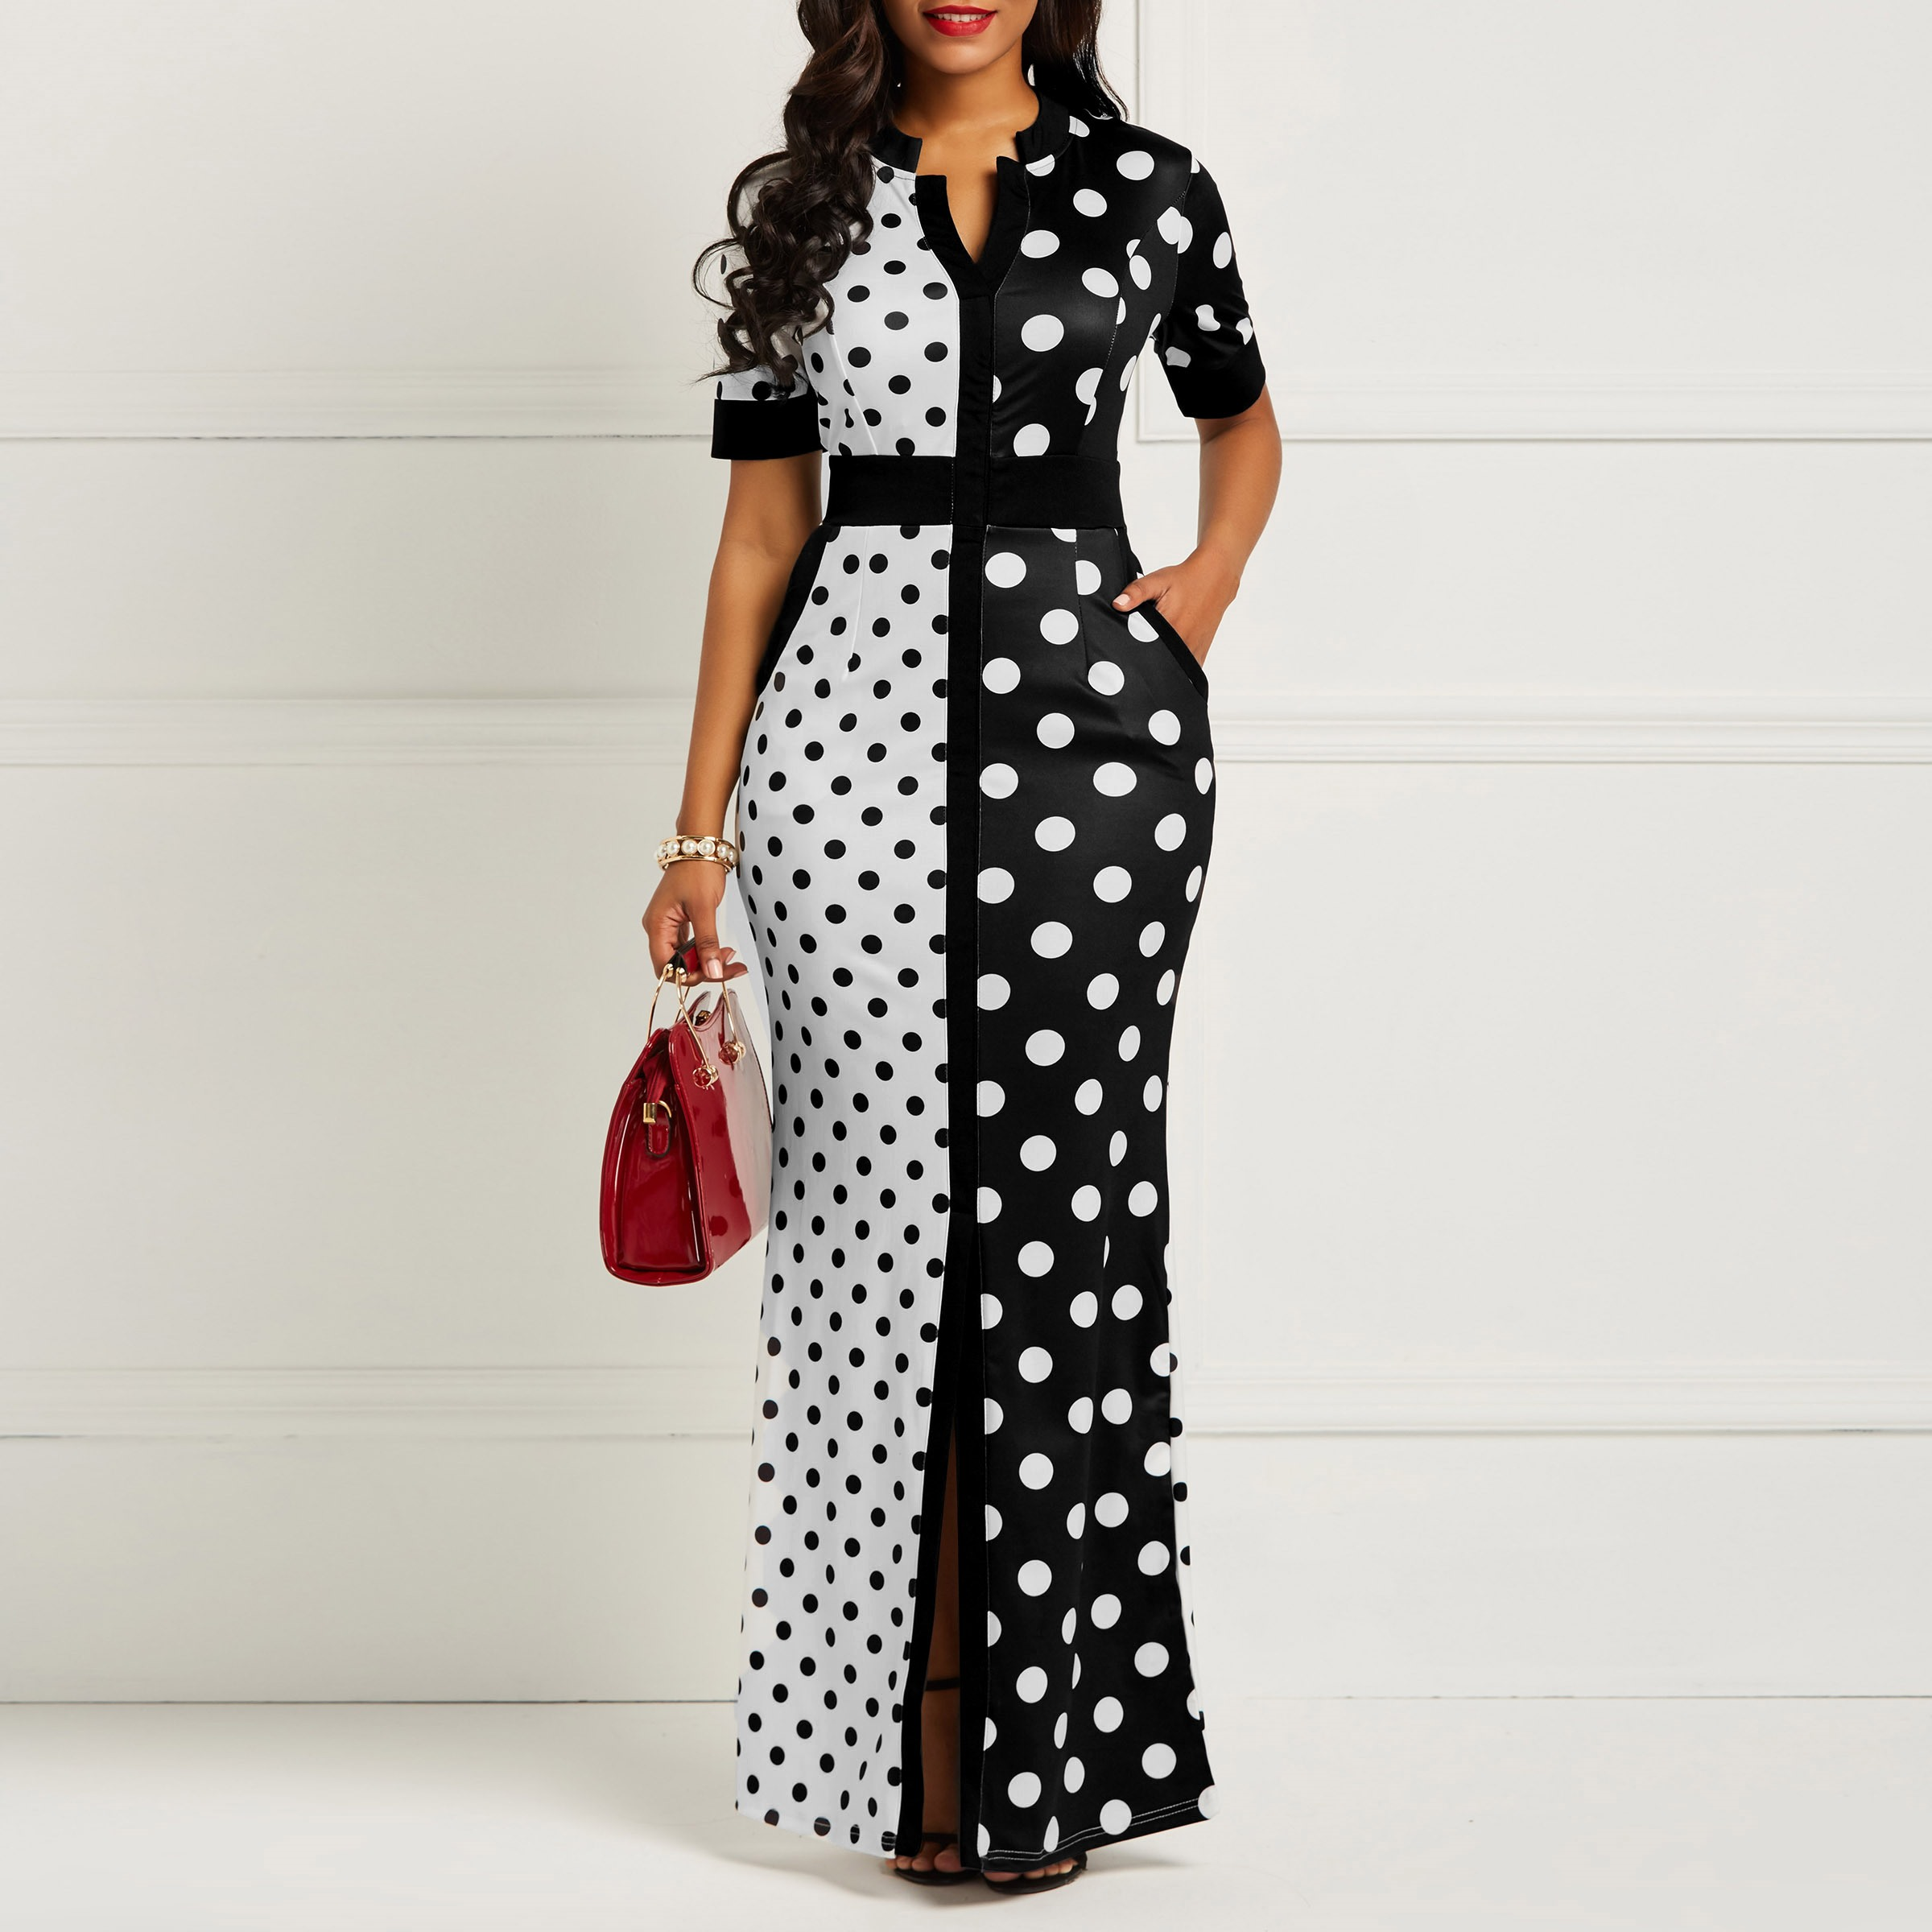 African Vintage Polka Dot White Black Printed Retro maxi Dress